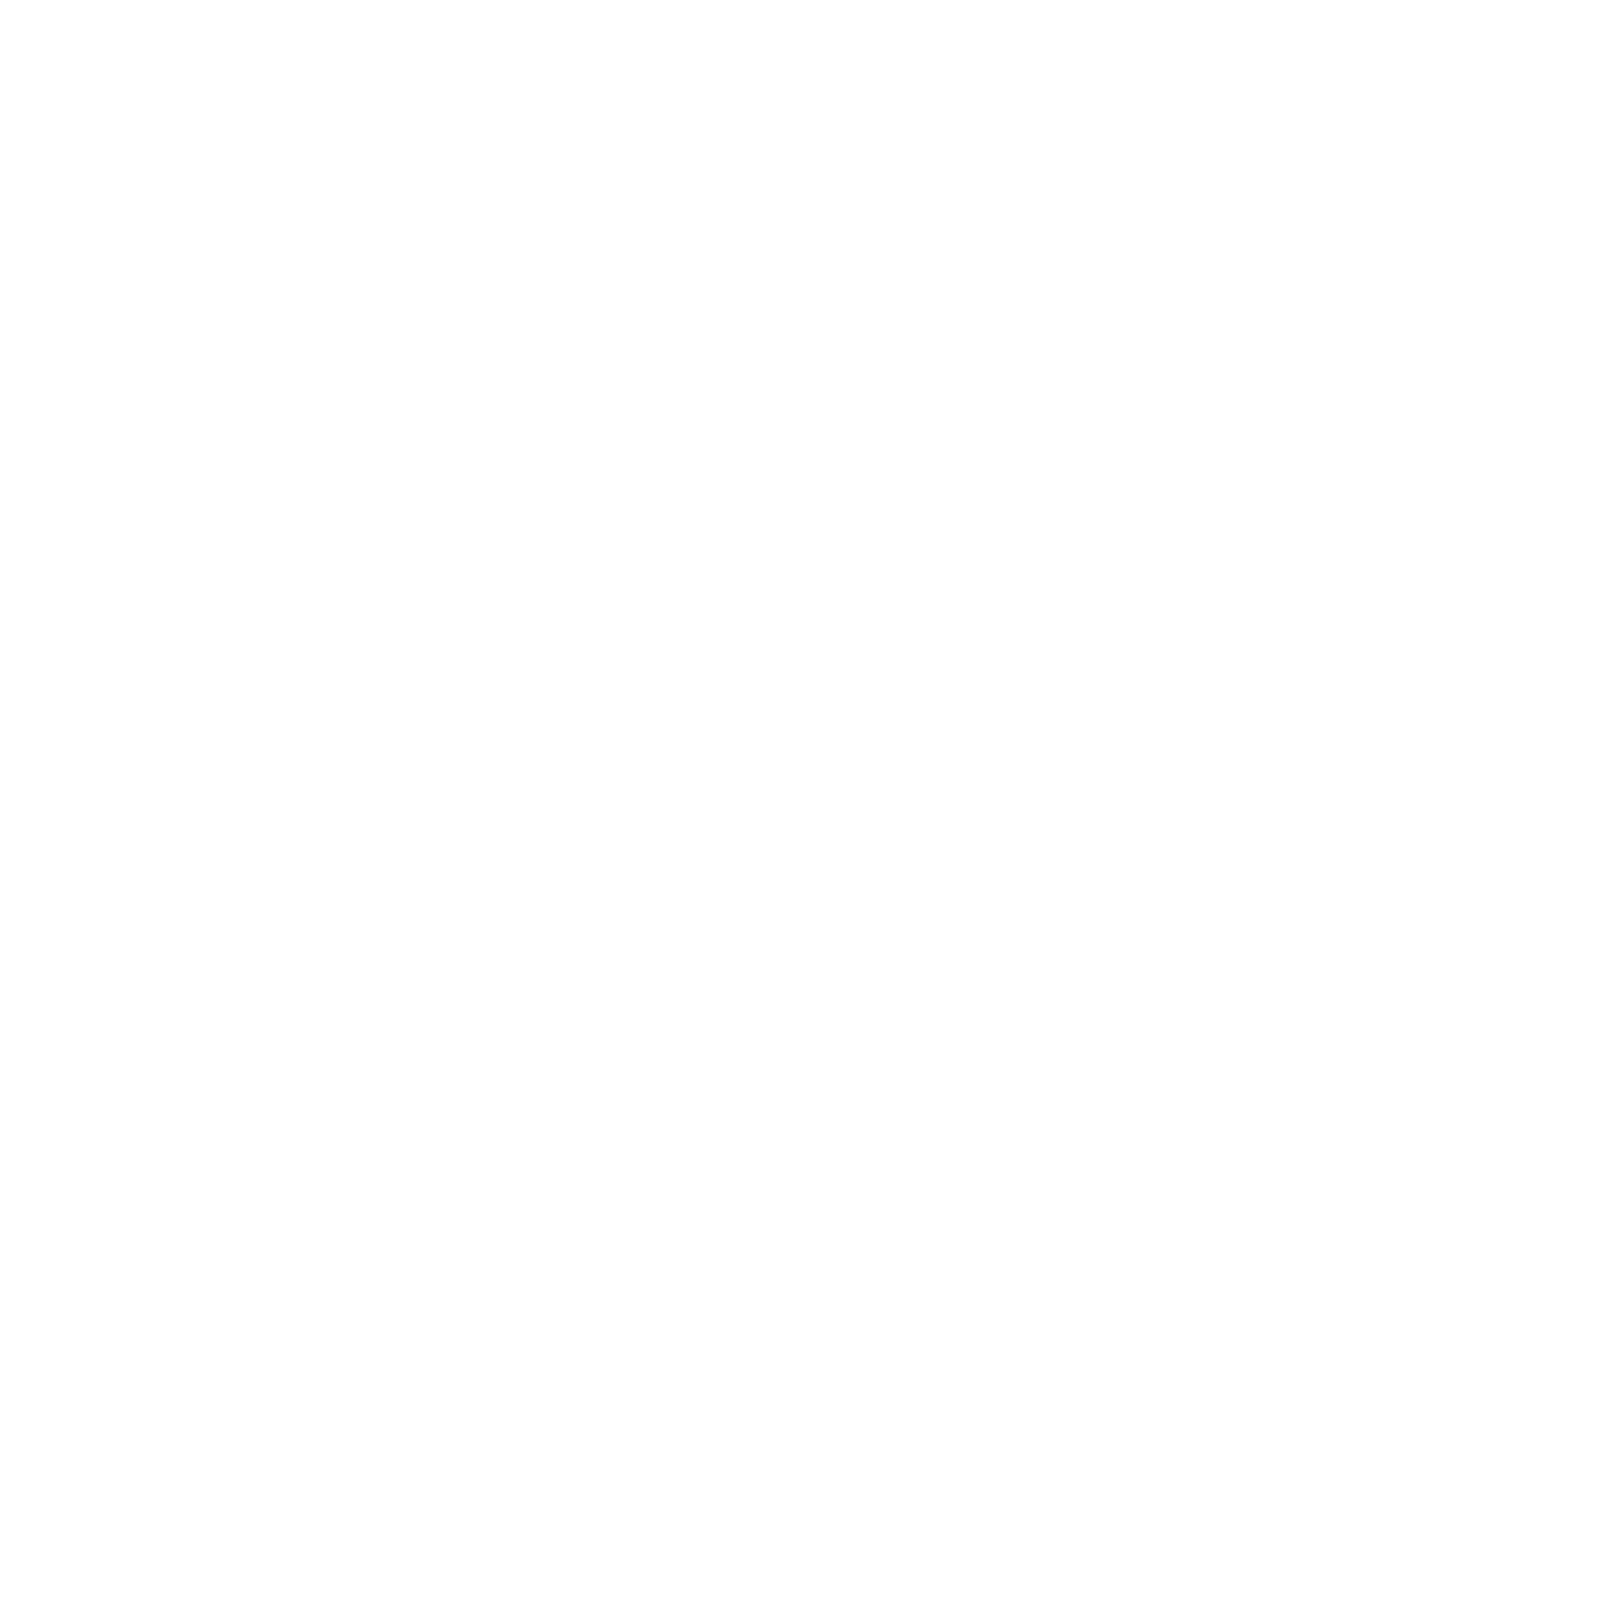 guildford-college-project-logo